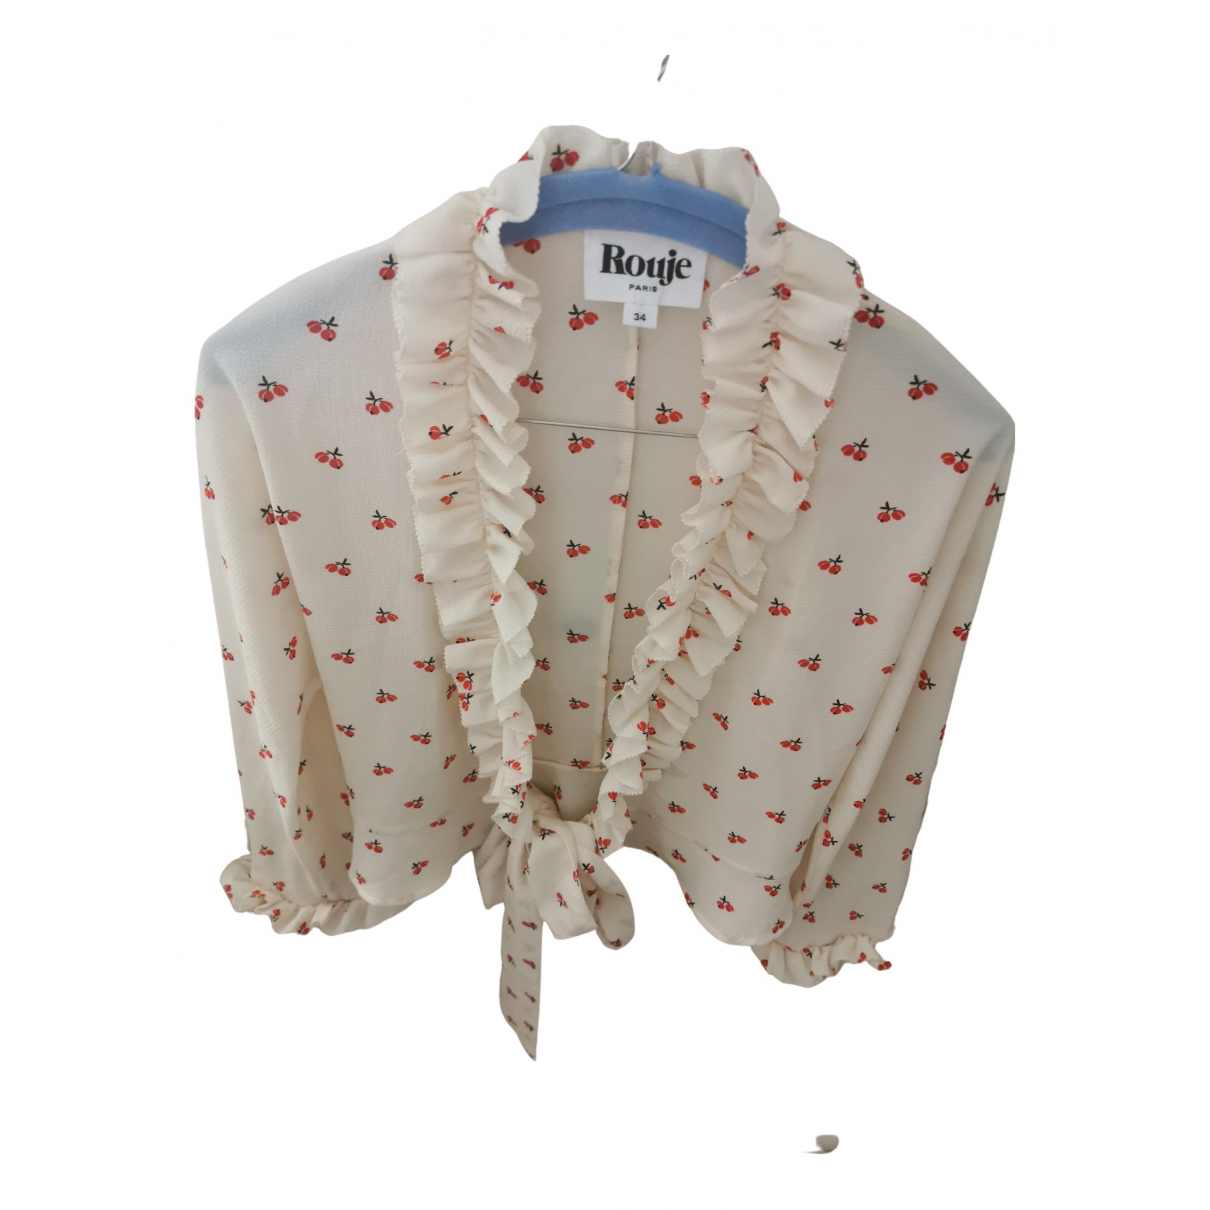 Rouje Spring Summer 2019 Top in Polyester